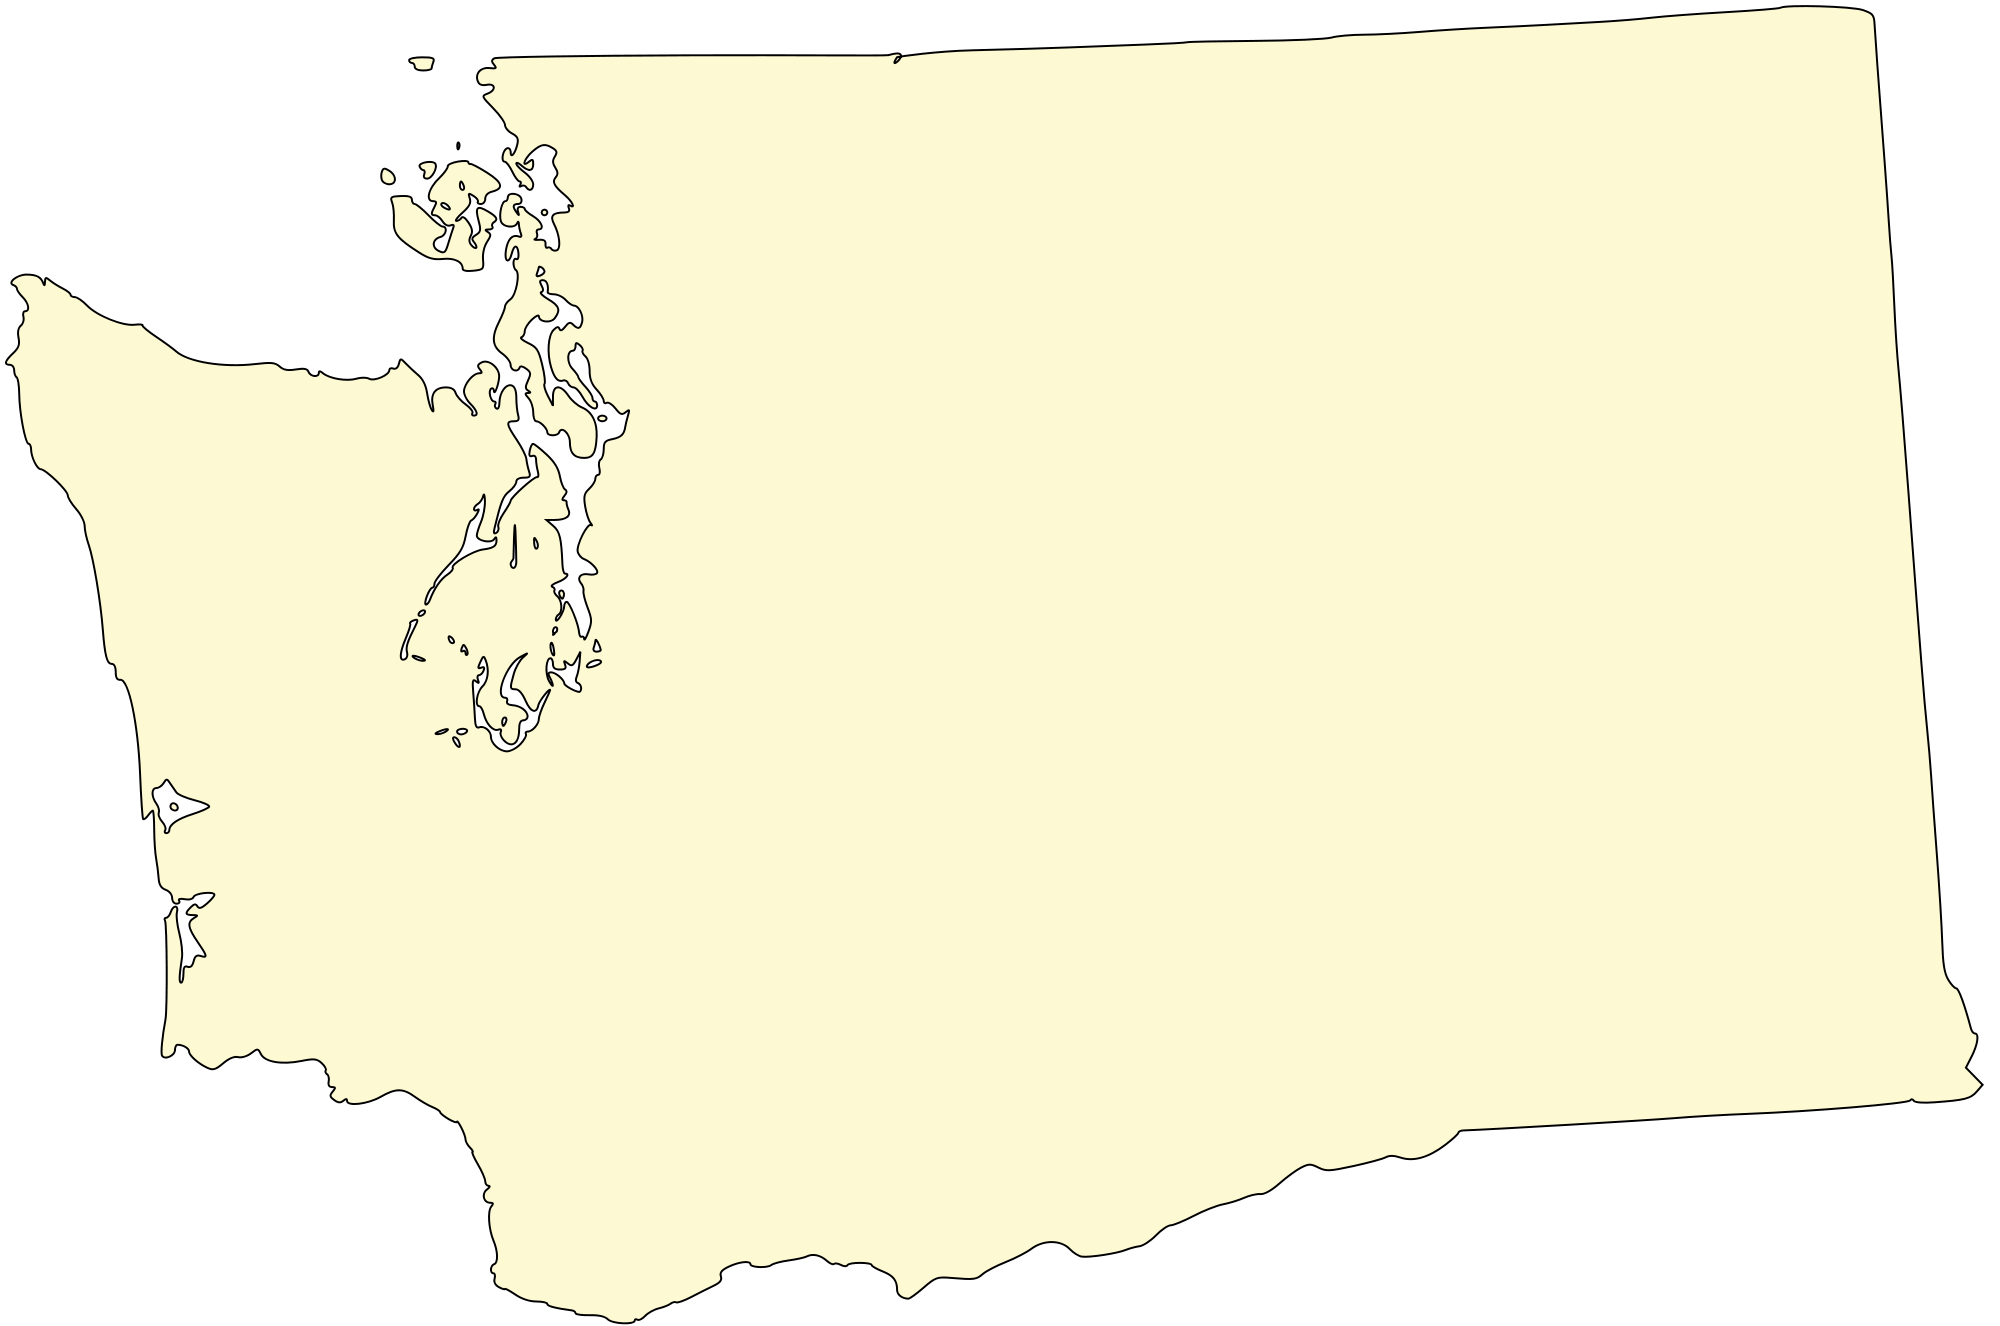 Washington state outline png. File map h svg